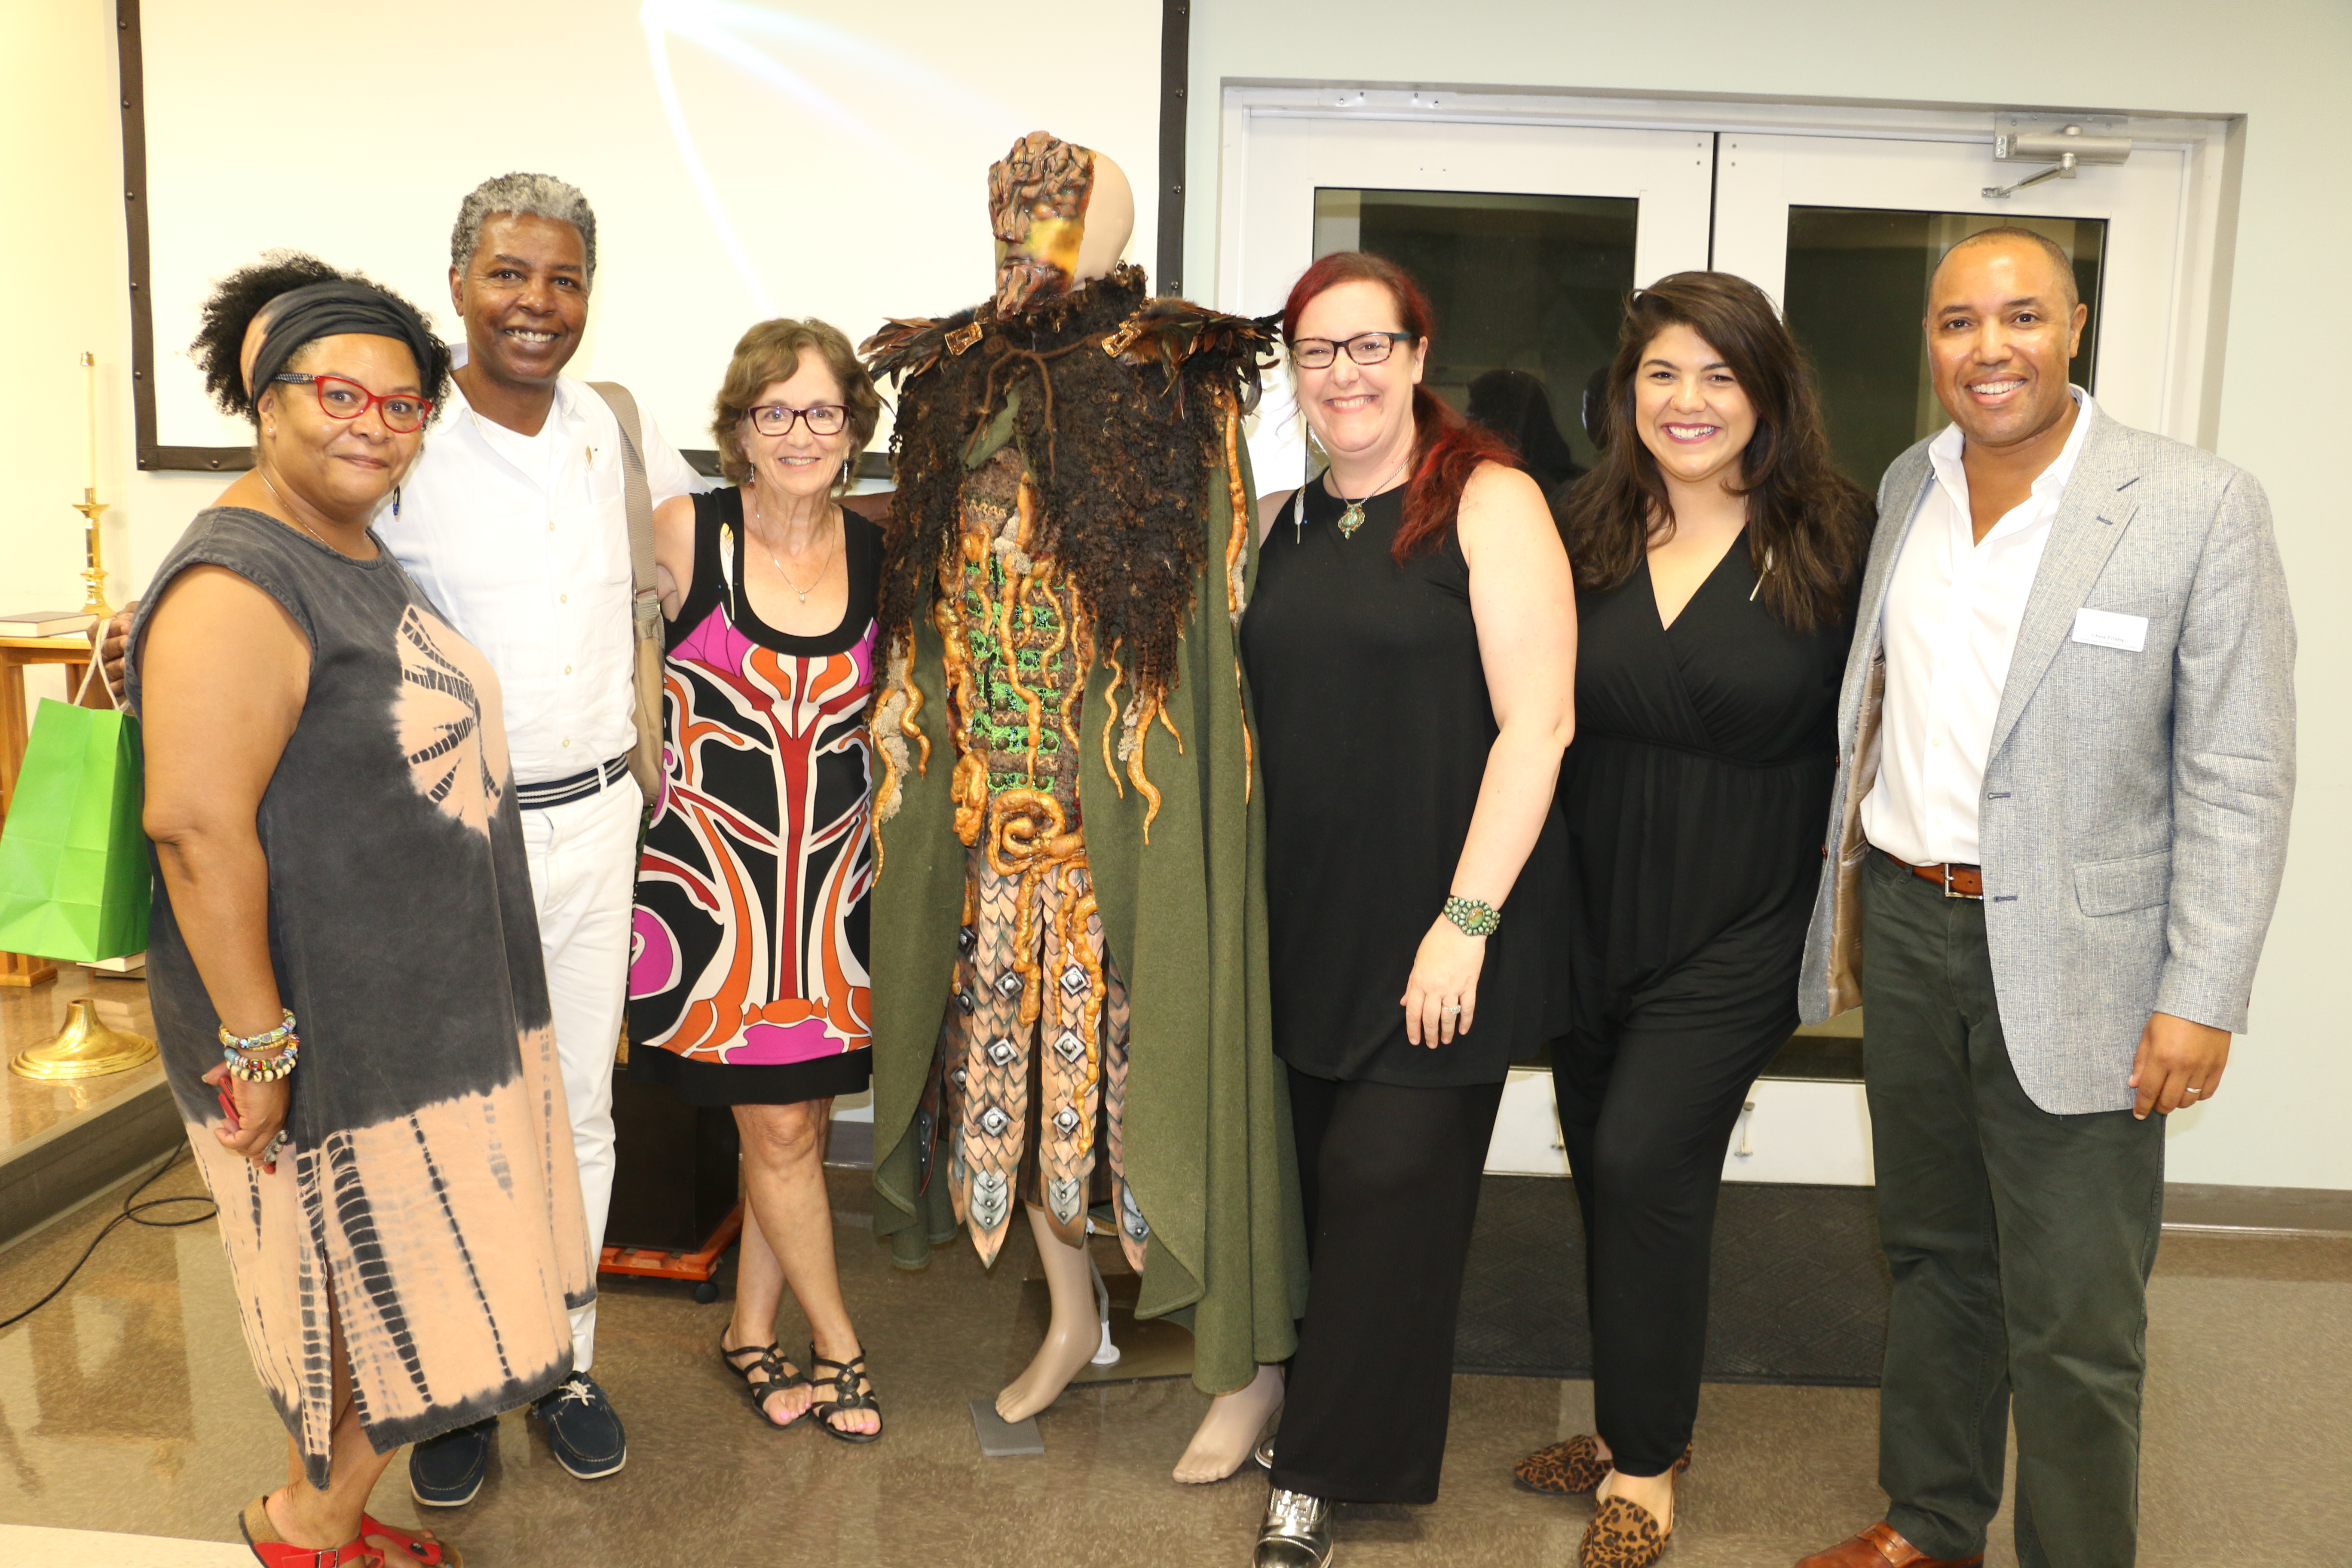 """Pictured left to right at the DIHS event are Joy Vandervort-Cobb, PURE Theatre; Jonathan Green; Carol Antman; the """"narrator"""" from Kris Manning's tree-inspired art installation for """"Osceola's Muse""""; Kris Manning; Camille Hayes, the play's co-director; and Chris Frisby, president of the Daniel Island Historical Society."""